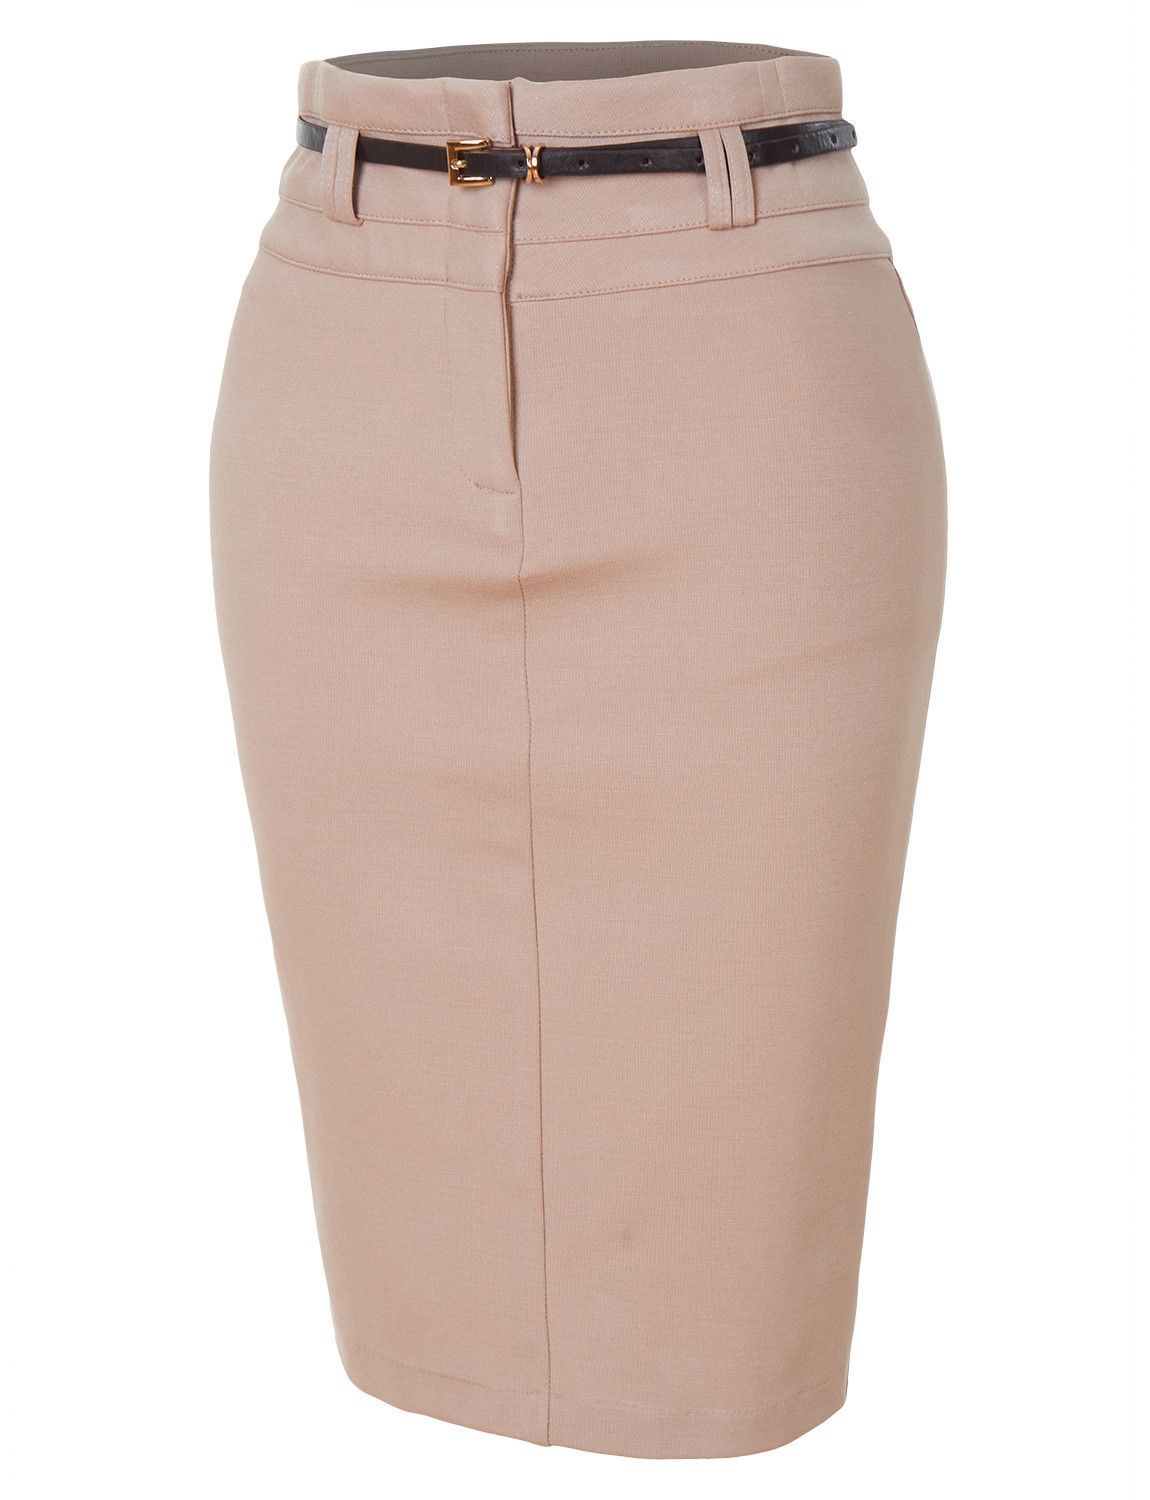 6a5a02b0fb This fitted stretchy bodycon midi pencil skirt with faux leather belt will  fit amazingly on the body. It is made with stretch that will leave you ...